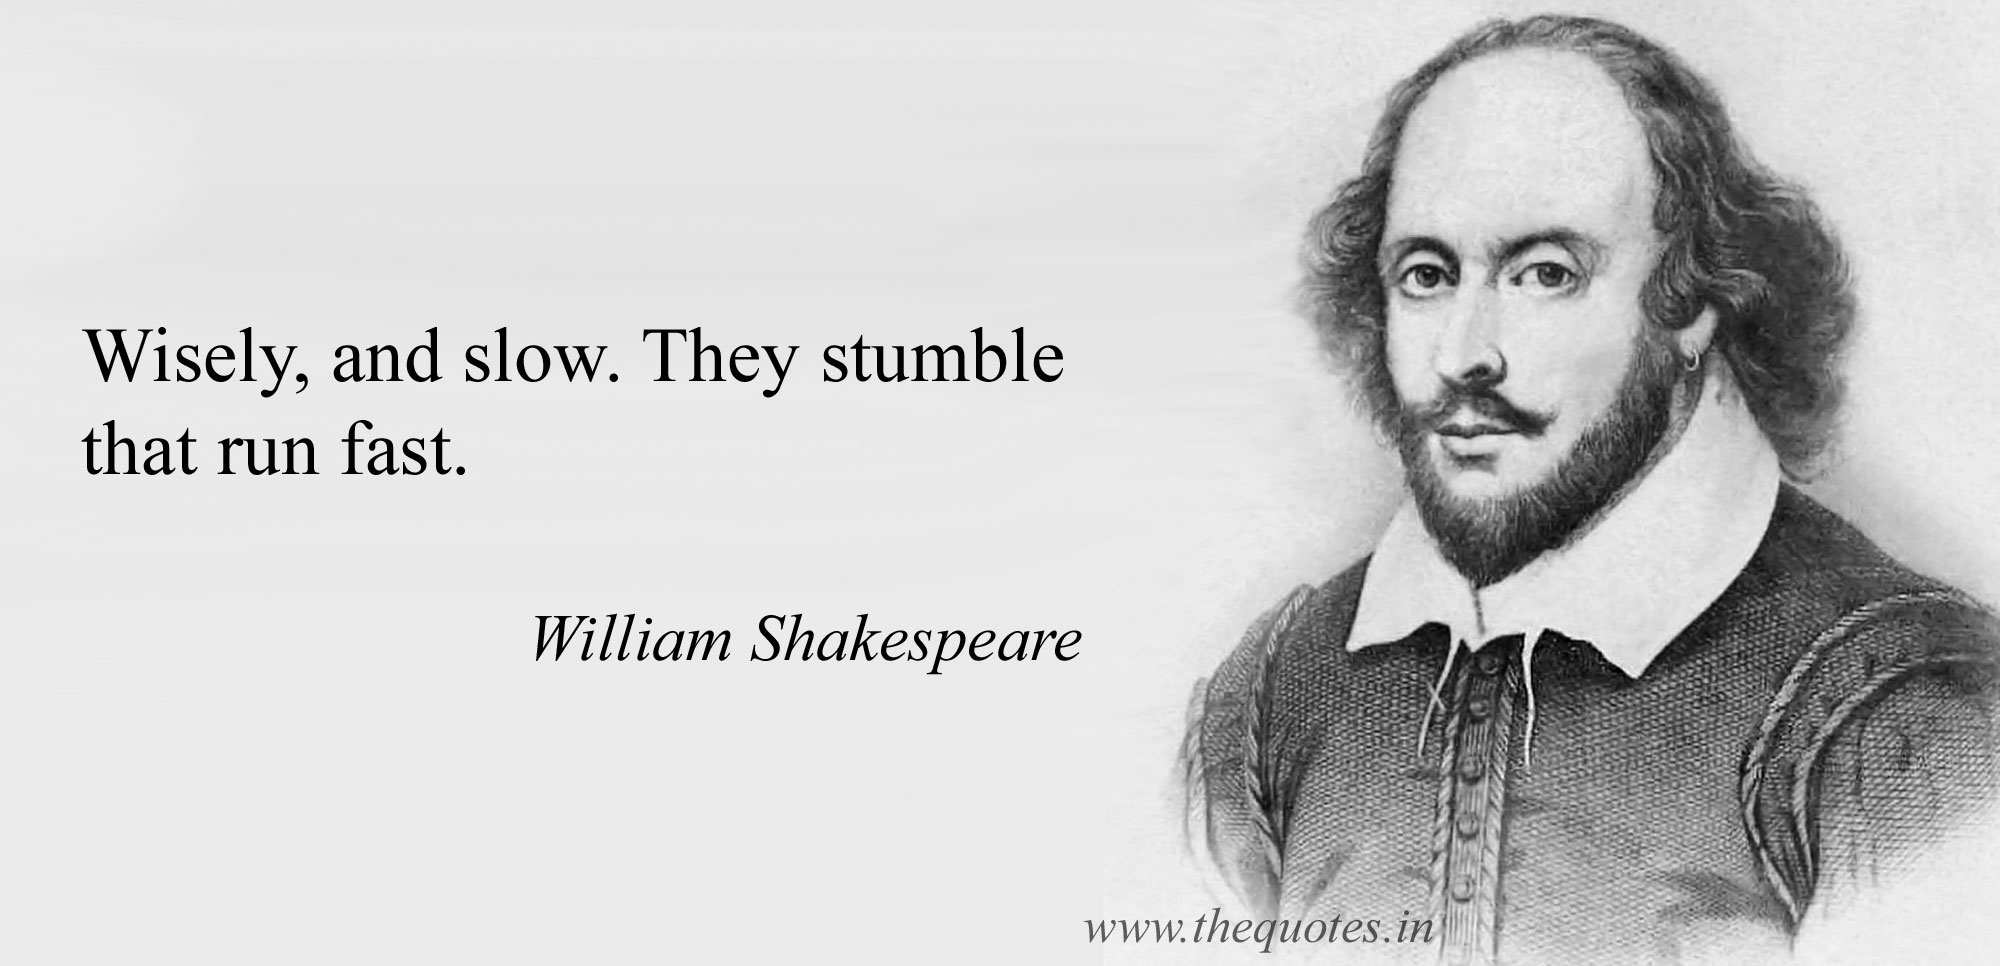 Shakespeare - wisely and slow